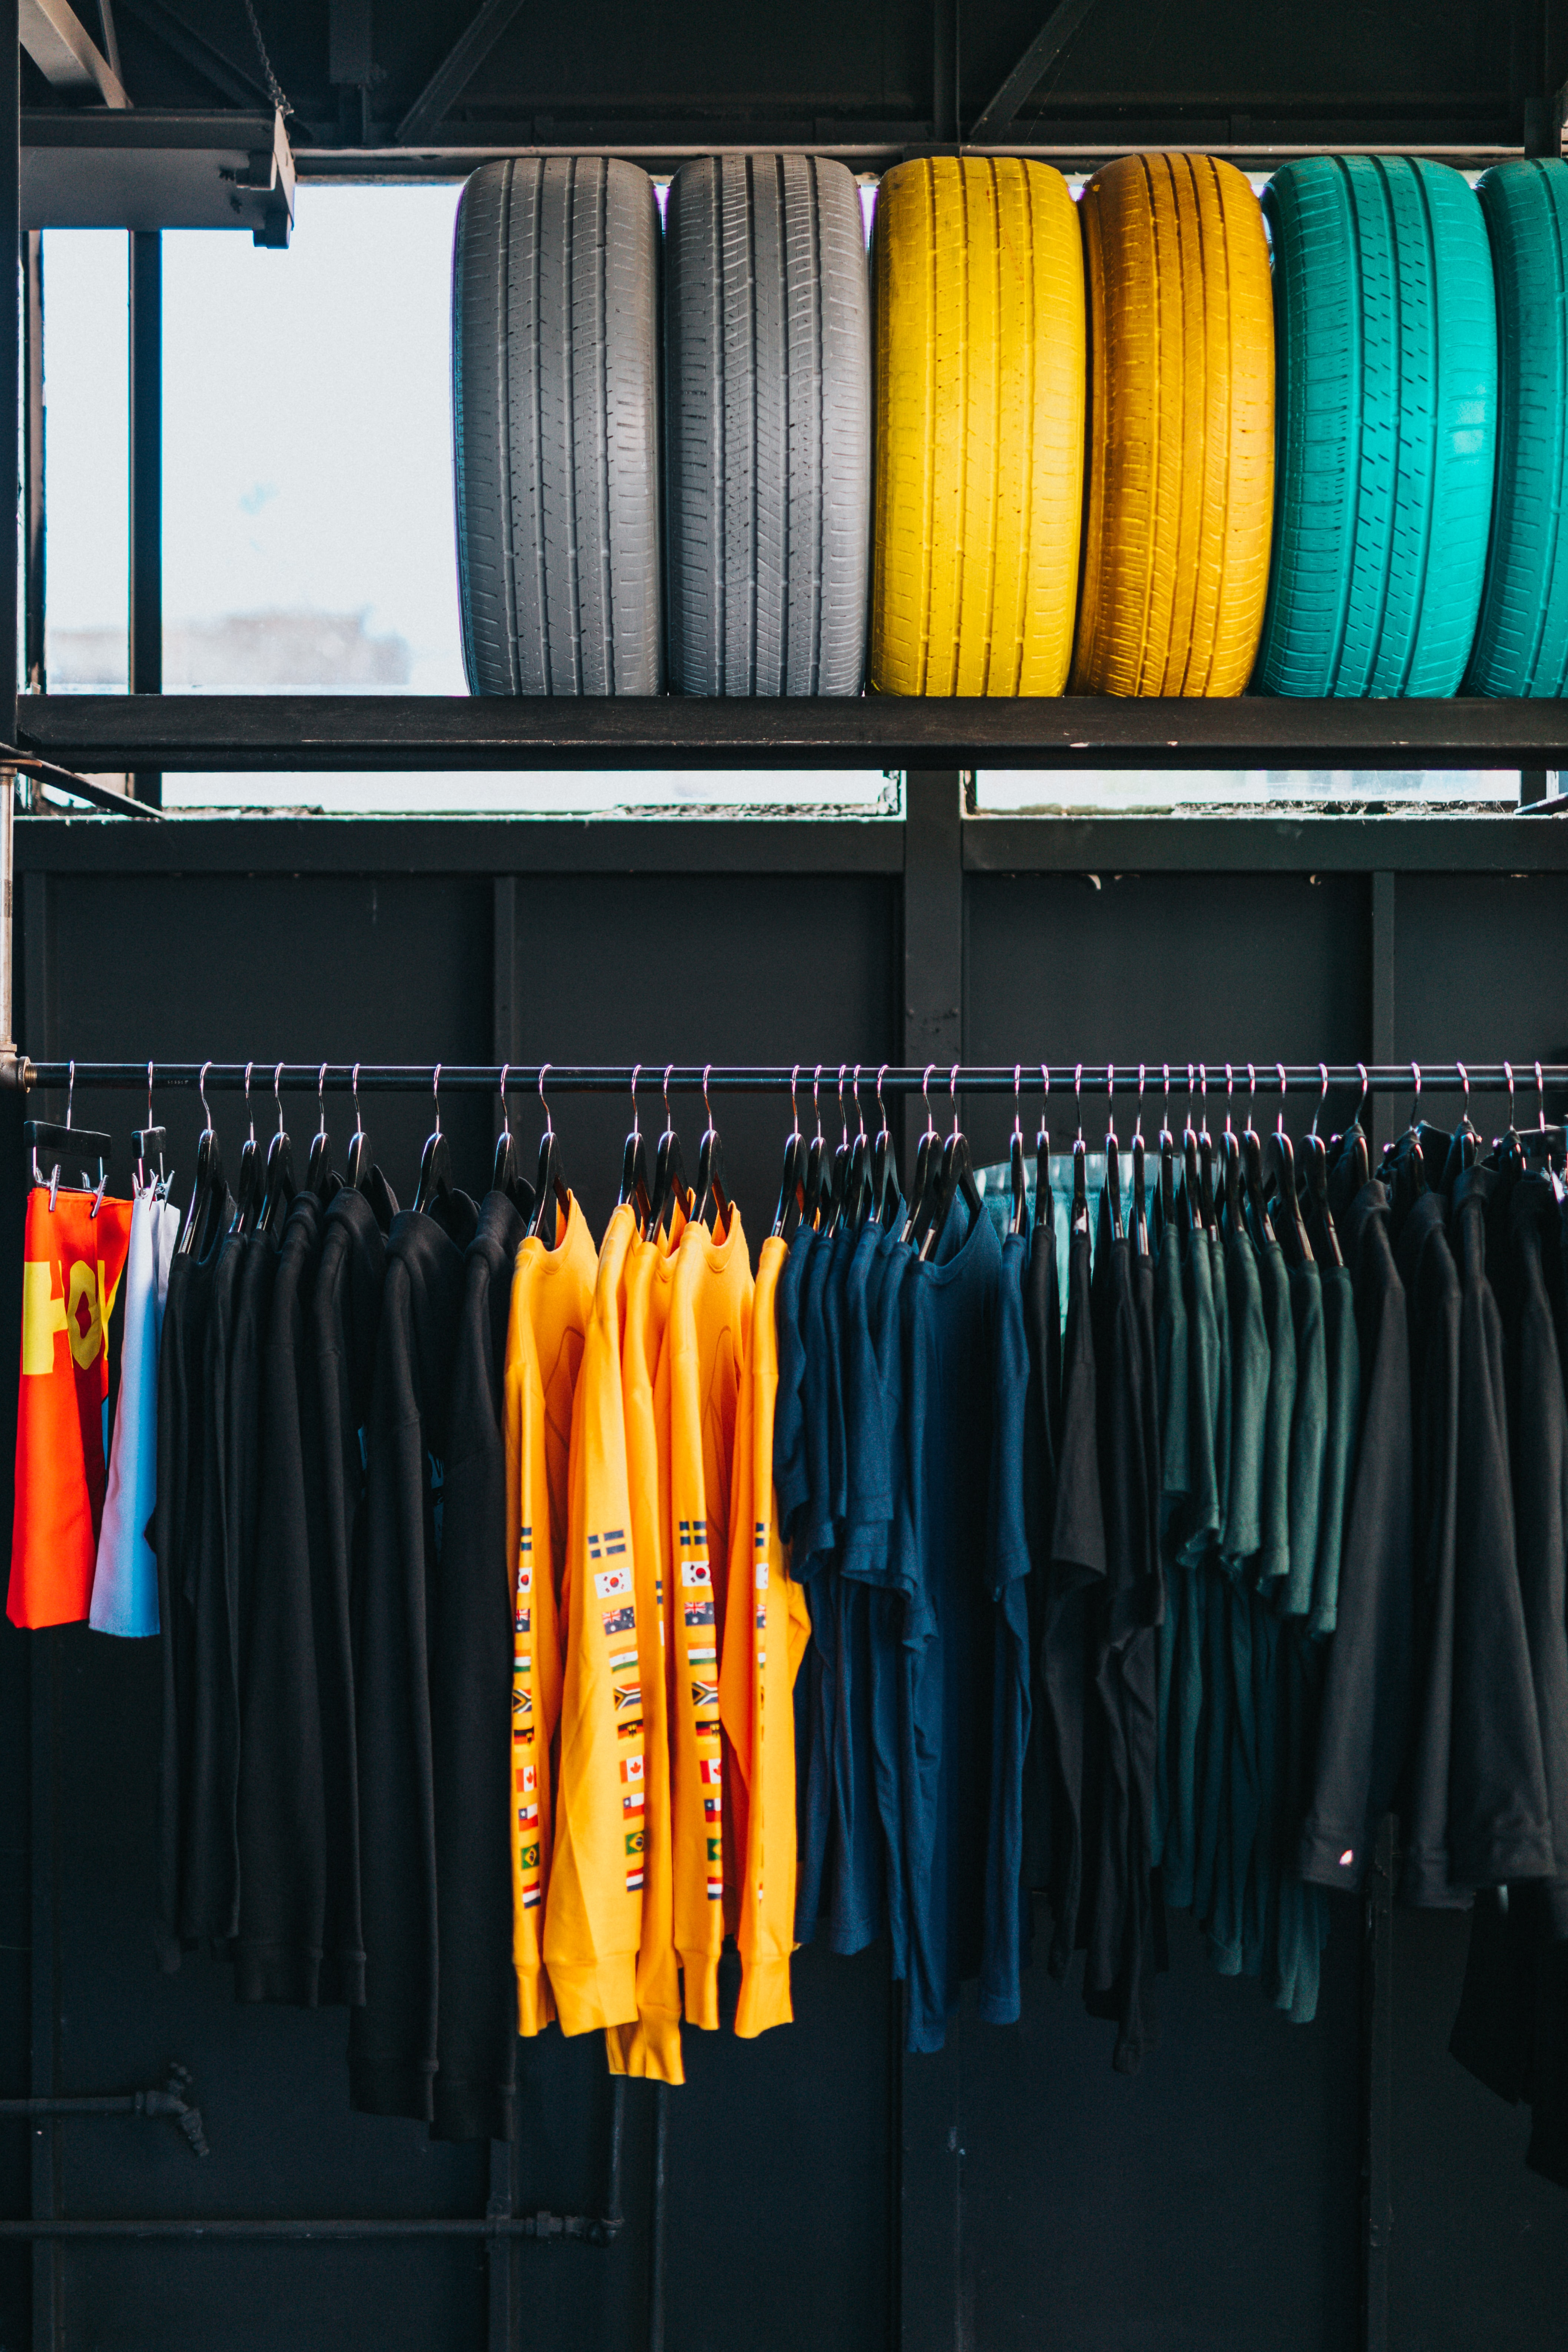 Due to the success of their (secret) warehouse, the DTC company is turning to retail.